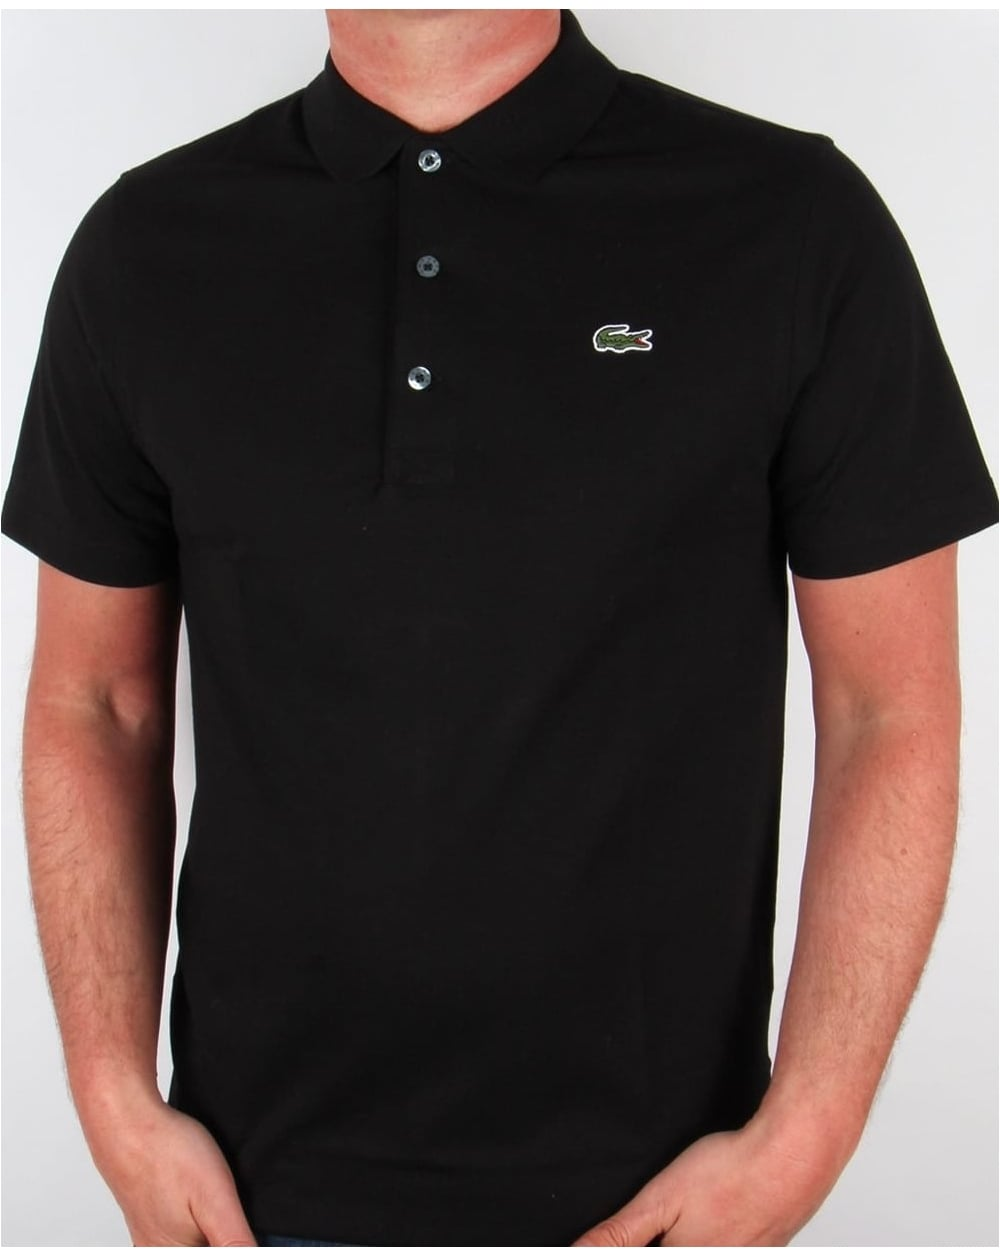 Lacoste ultra lightweight knit polo shirt black 80s casual classics - Lacoste poloshirt weiay ...